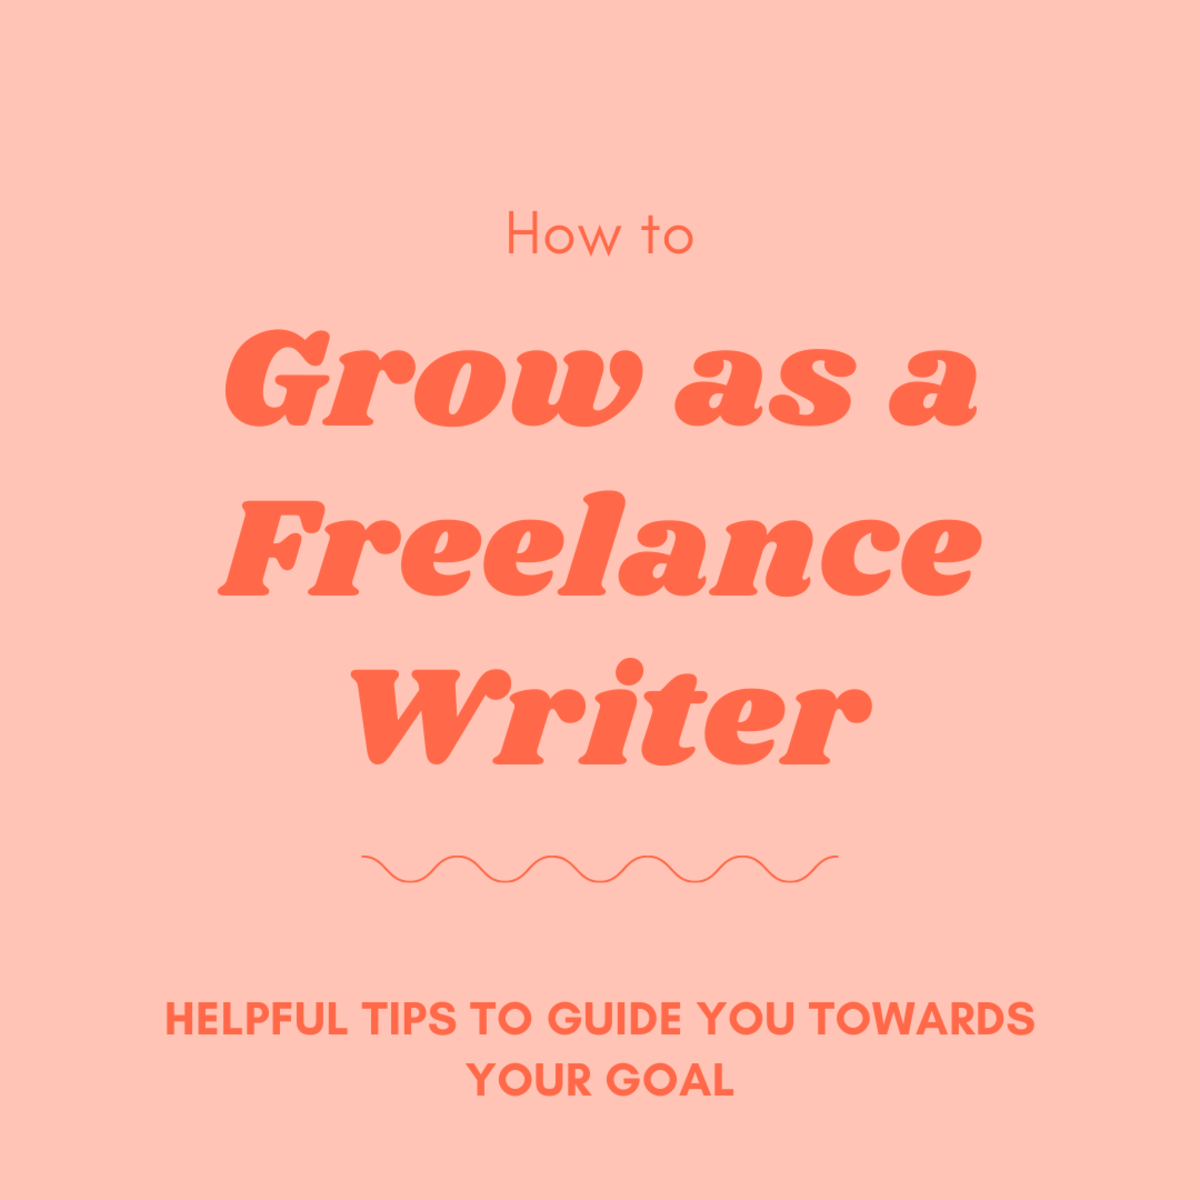 How to Grow as a Freelance Writer